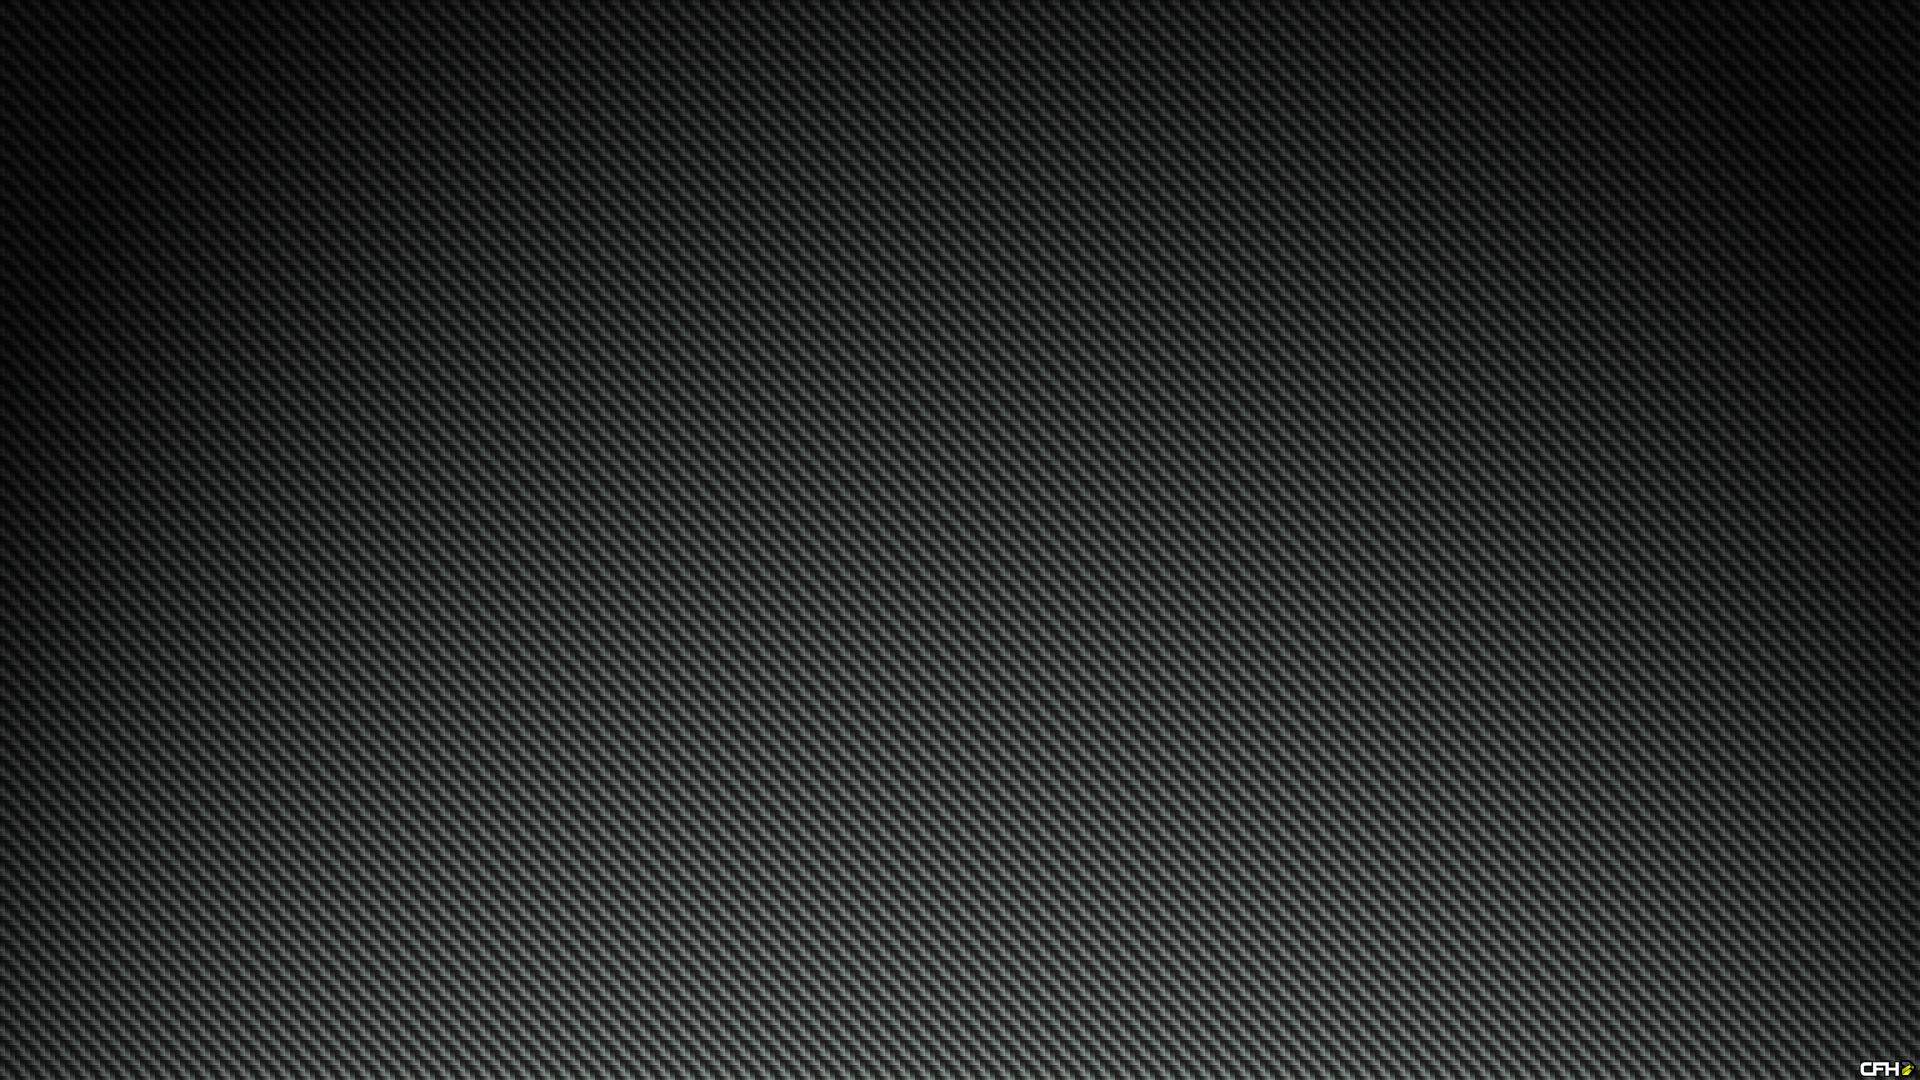 Showing Gallery For Carbon Fiber Wallpaper 1920x1080 1920x1080